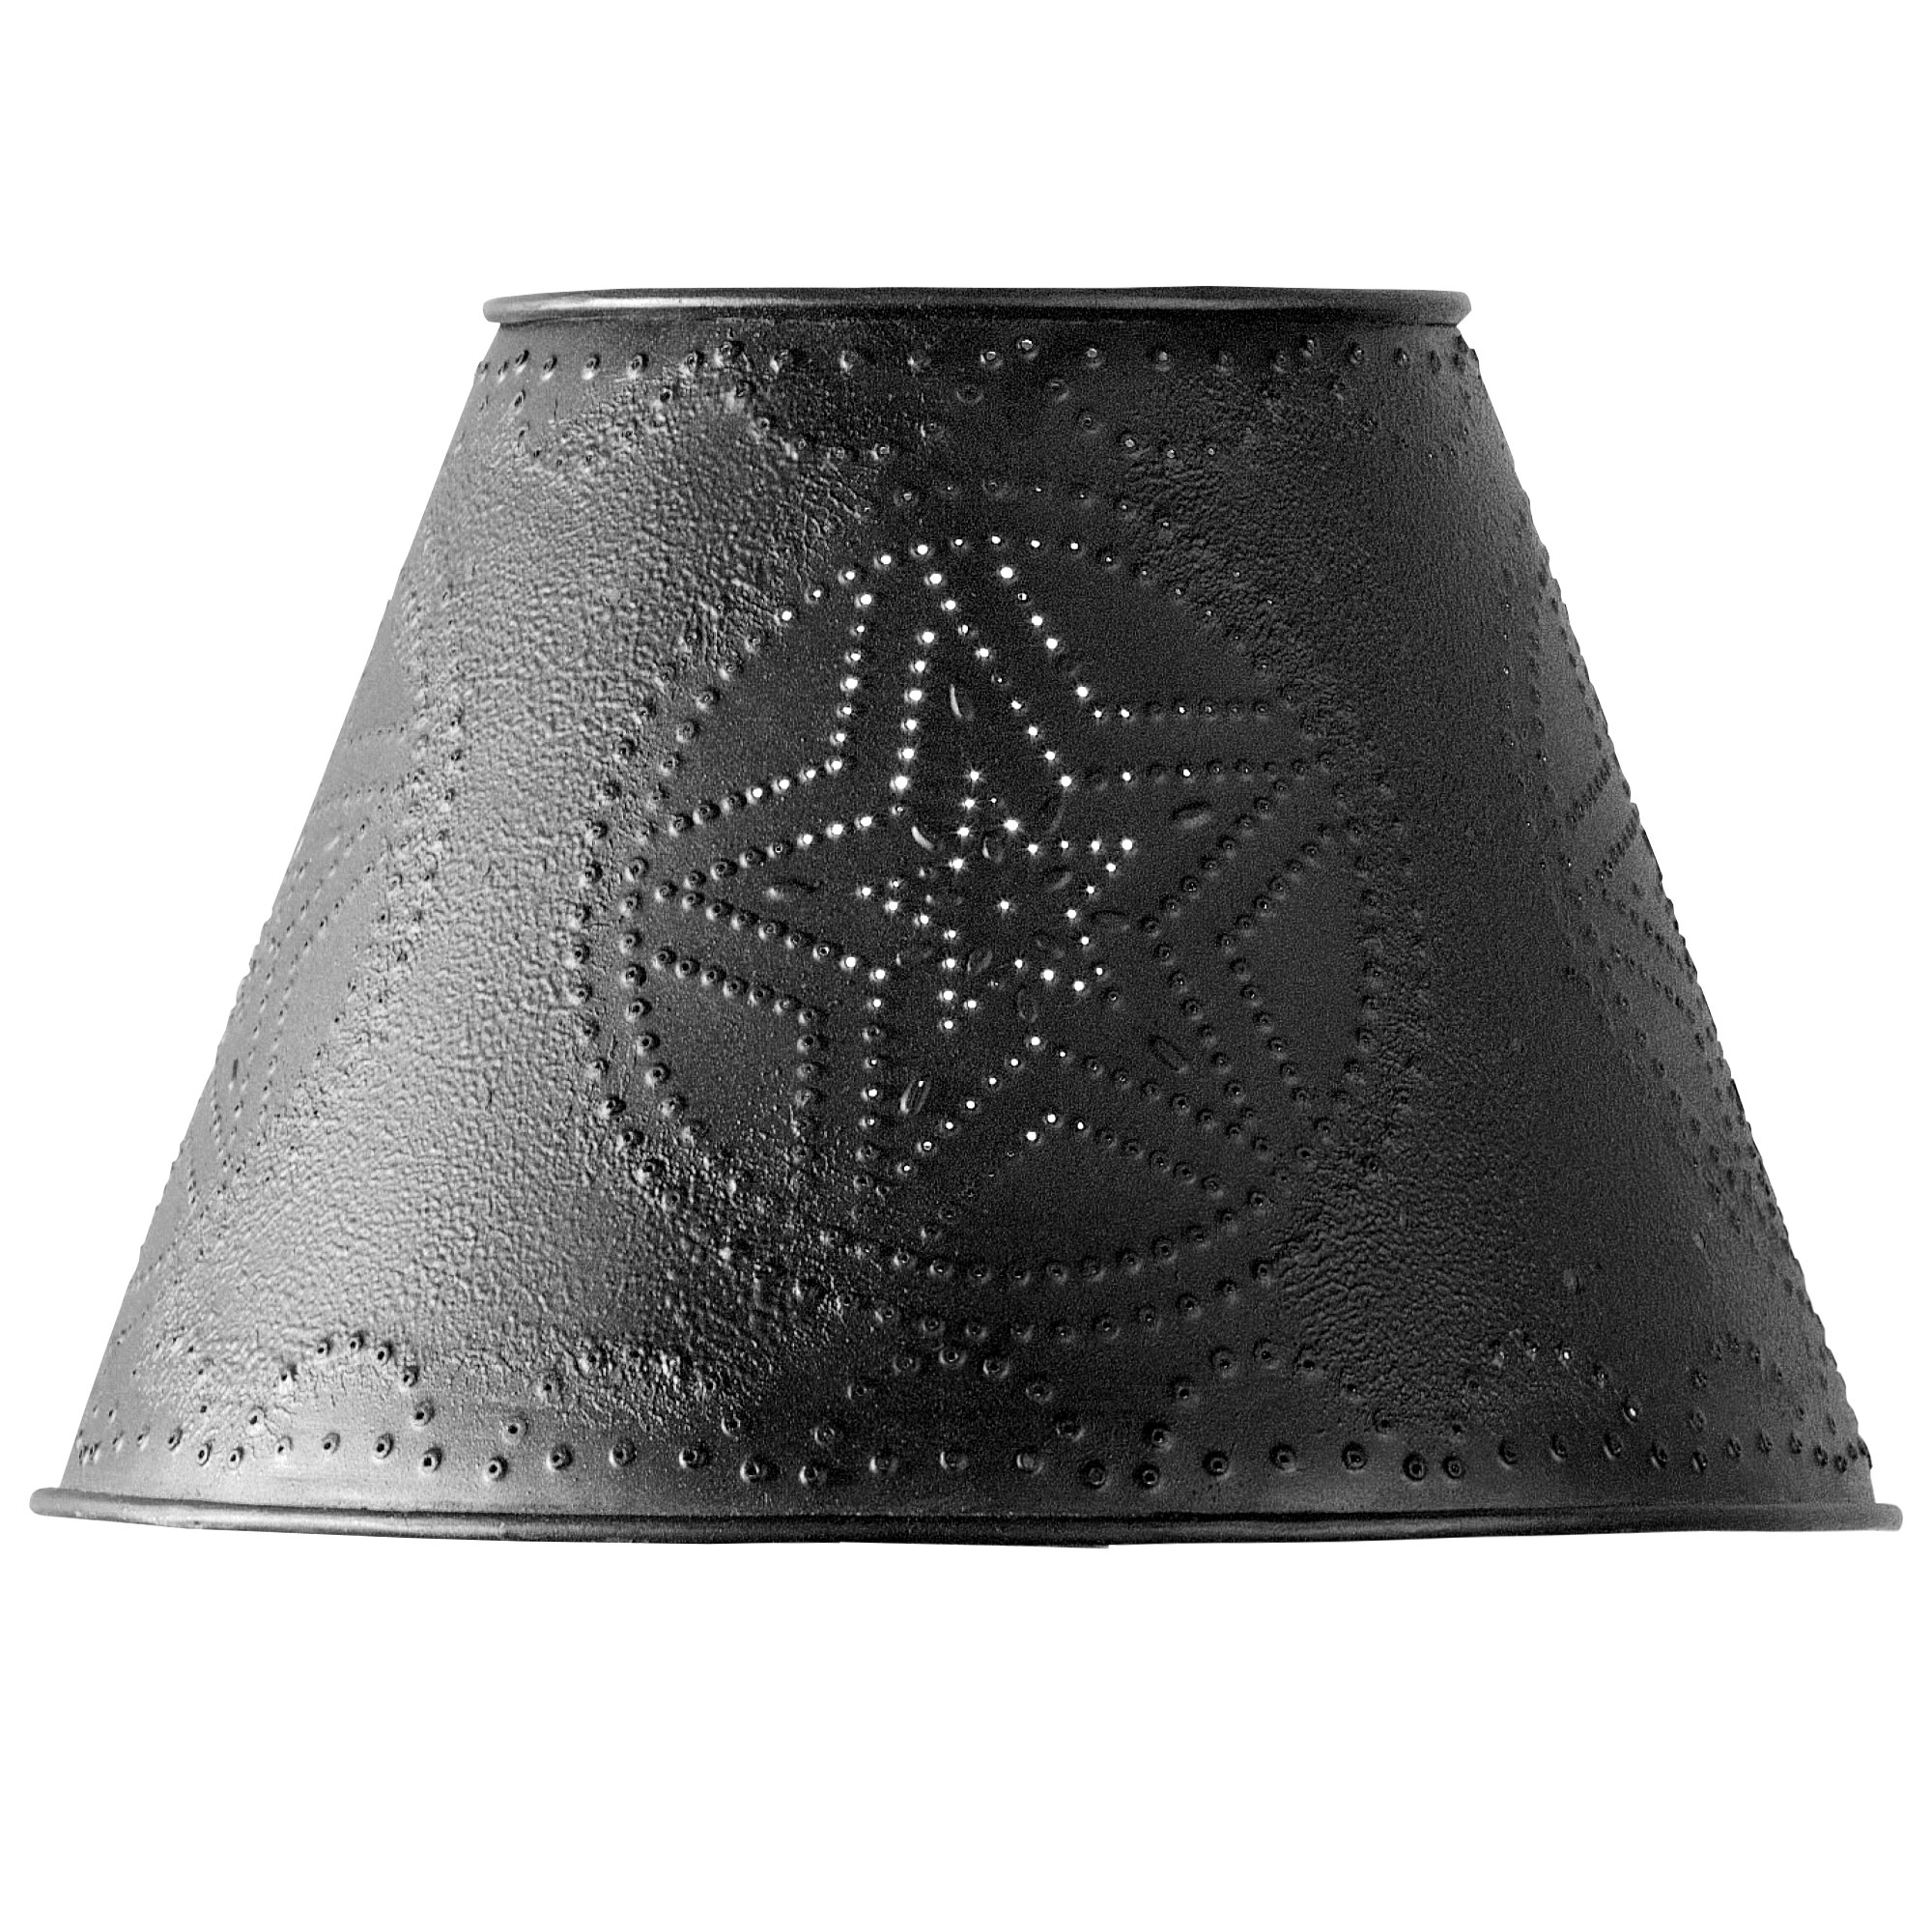 Punched Tin Lamp Shades by Park Designs Rustic Country Star or Willow Tree